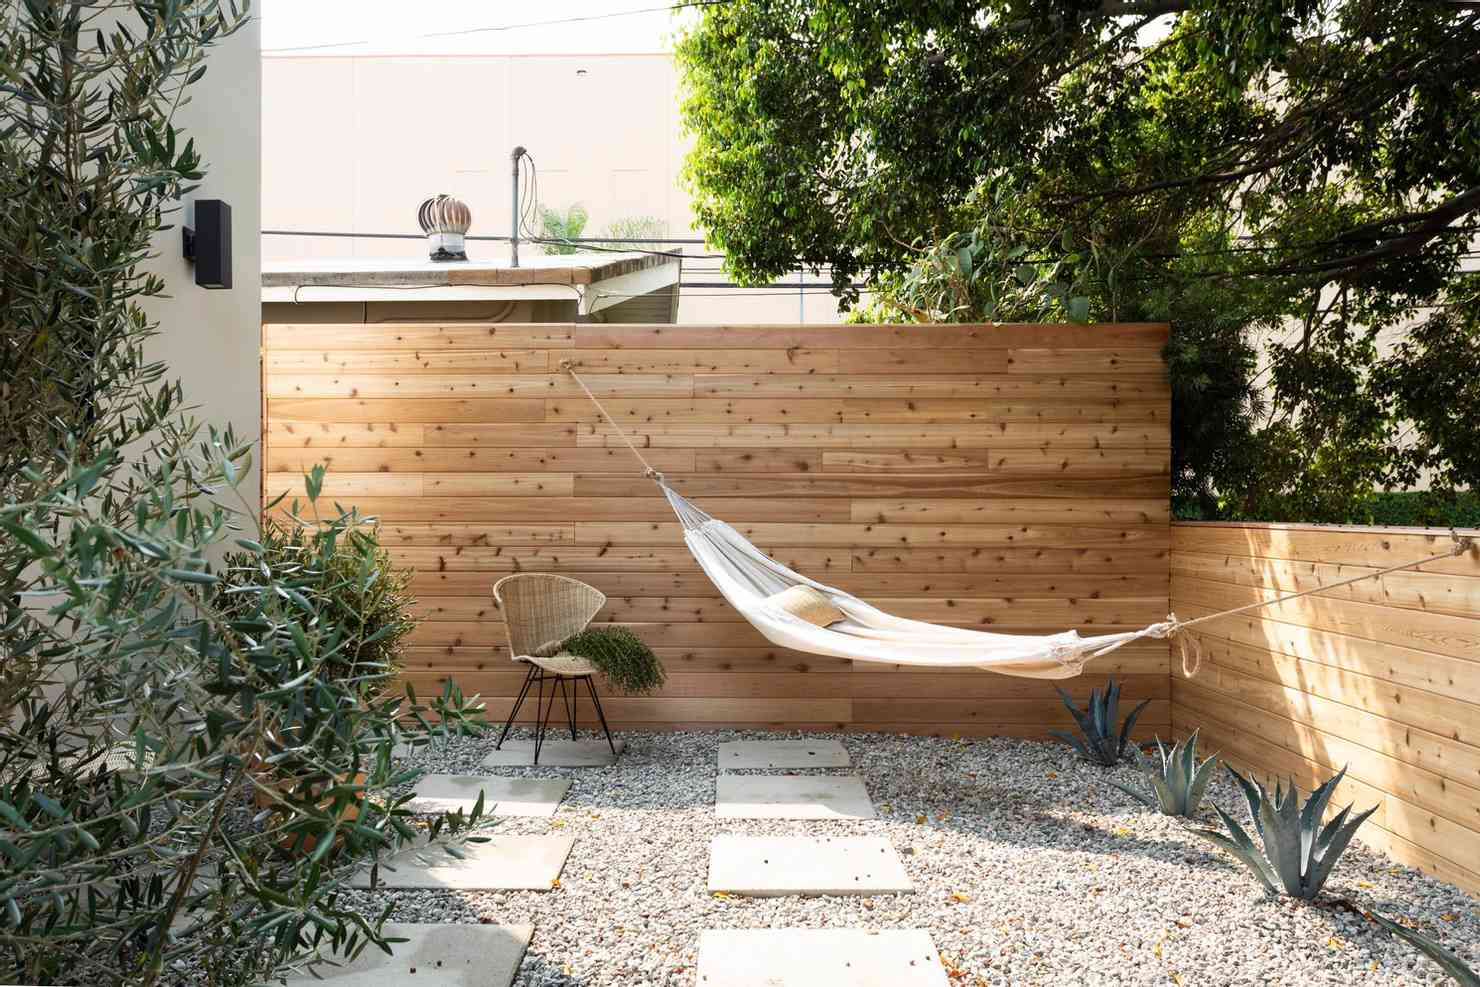 Julian Porcino privacy fence